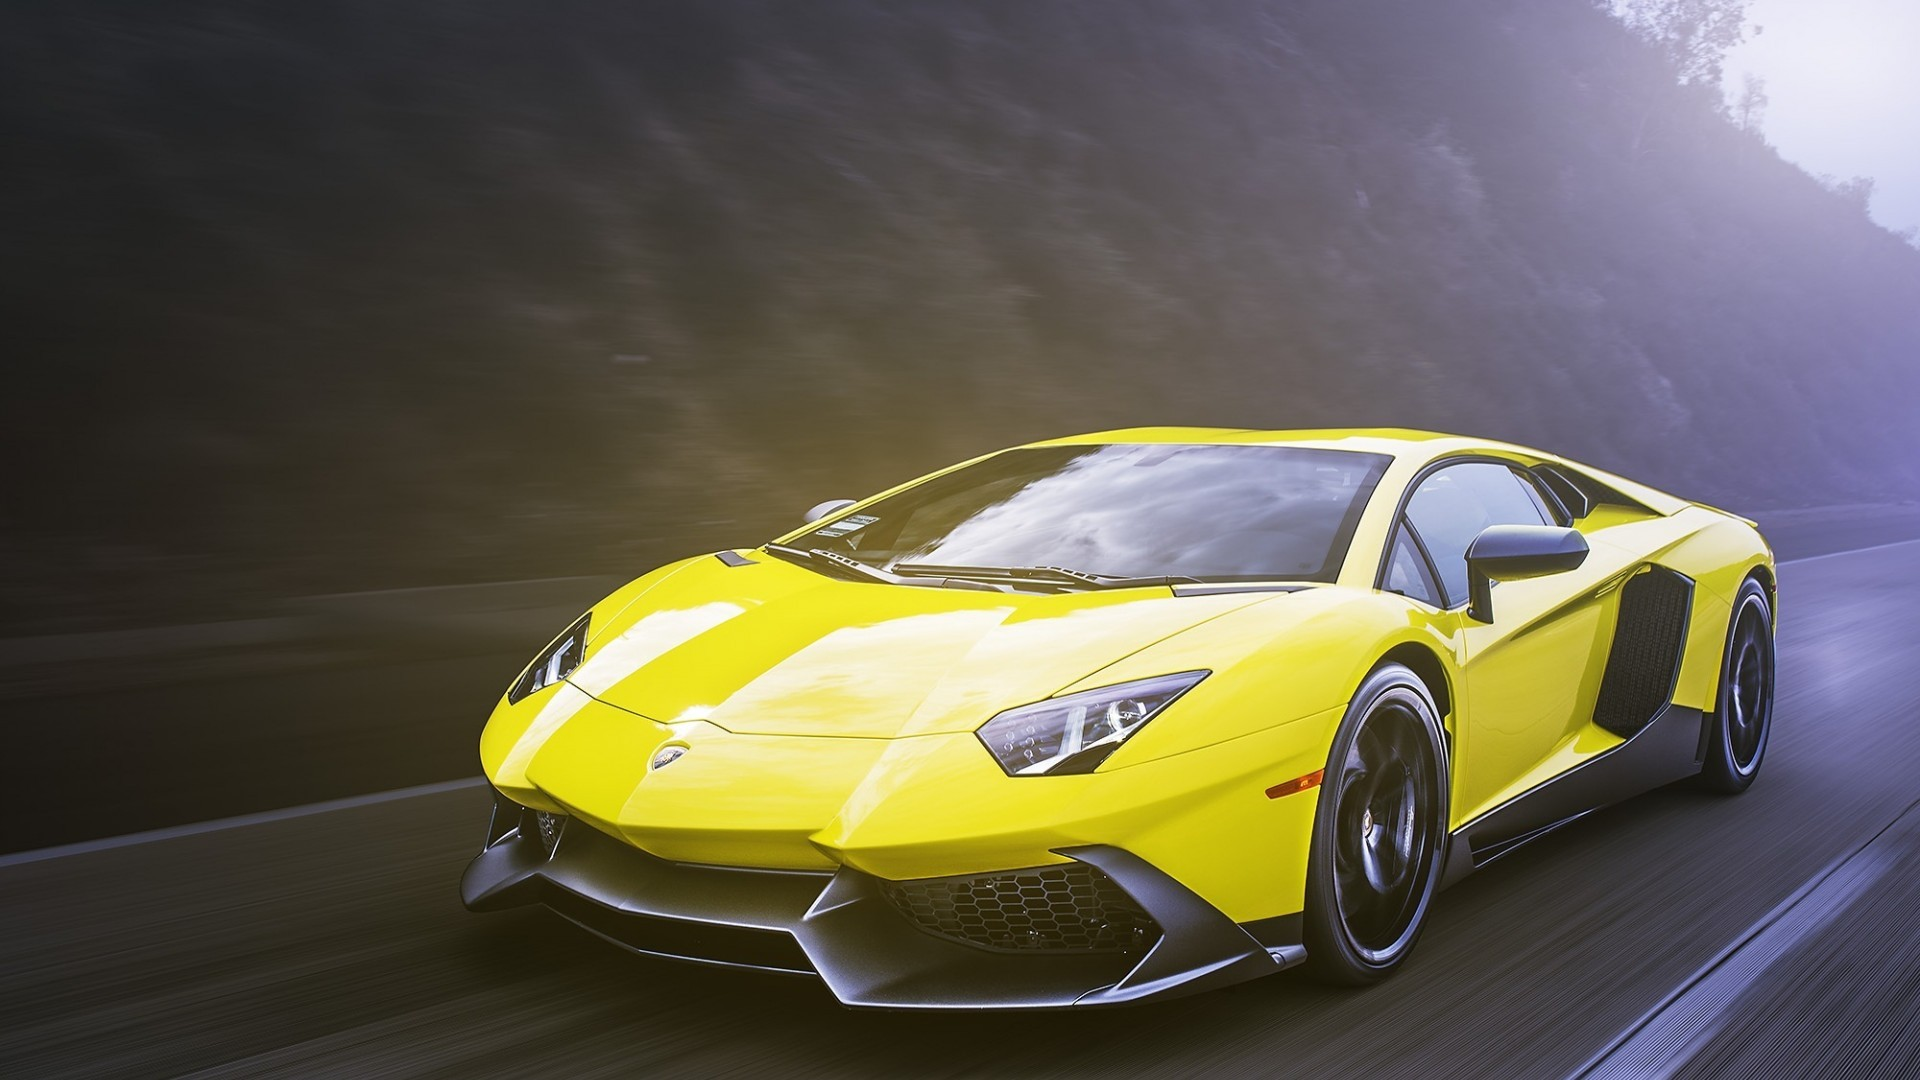 Car 5760x1080 Wallpaper Car Lamborghini Lamborghini Aventador Wallpapers Hd